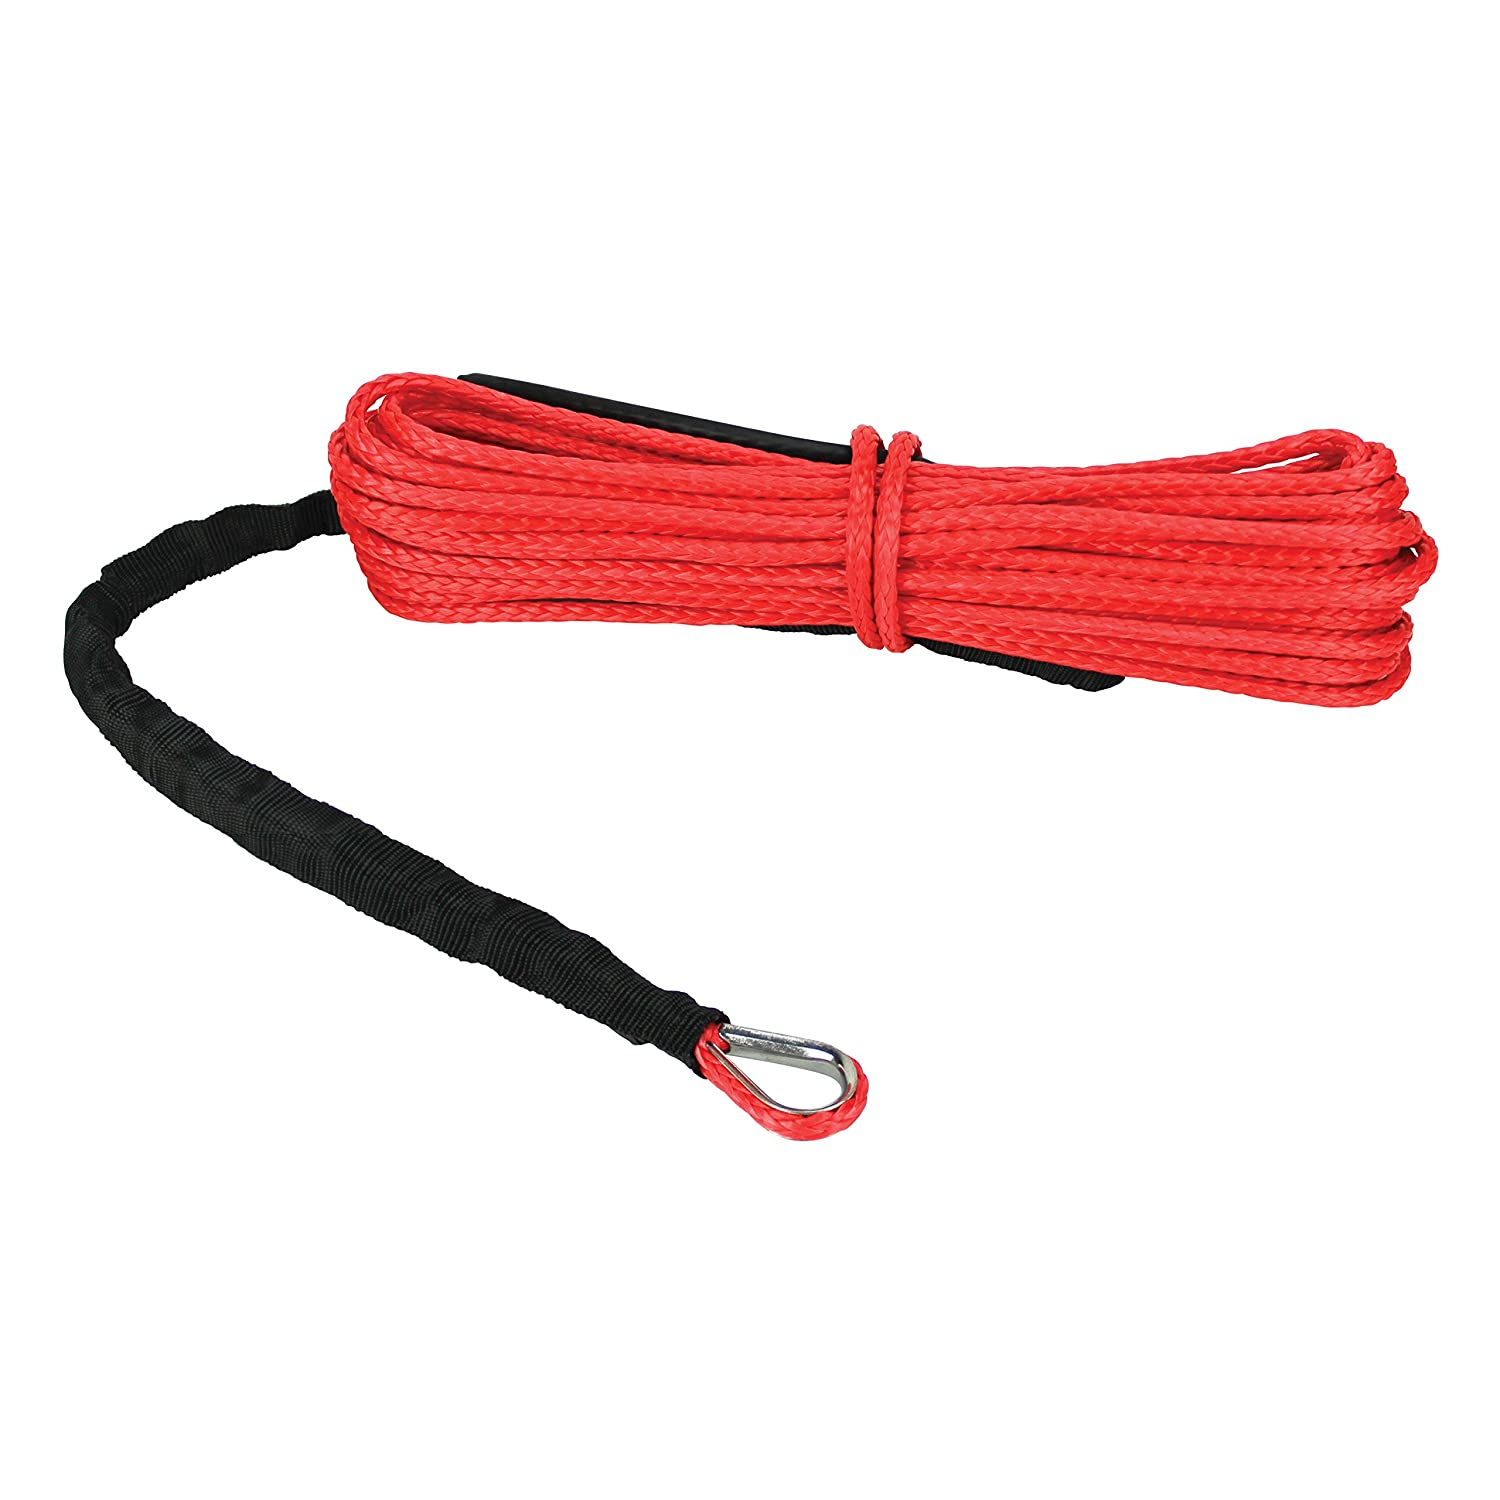 Extreme Max 5600.3081''The Devil's Hair' ATV/UTV Winch Rope, Gray Devil' s Hair